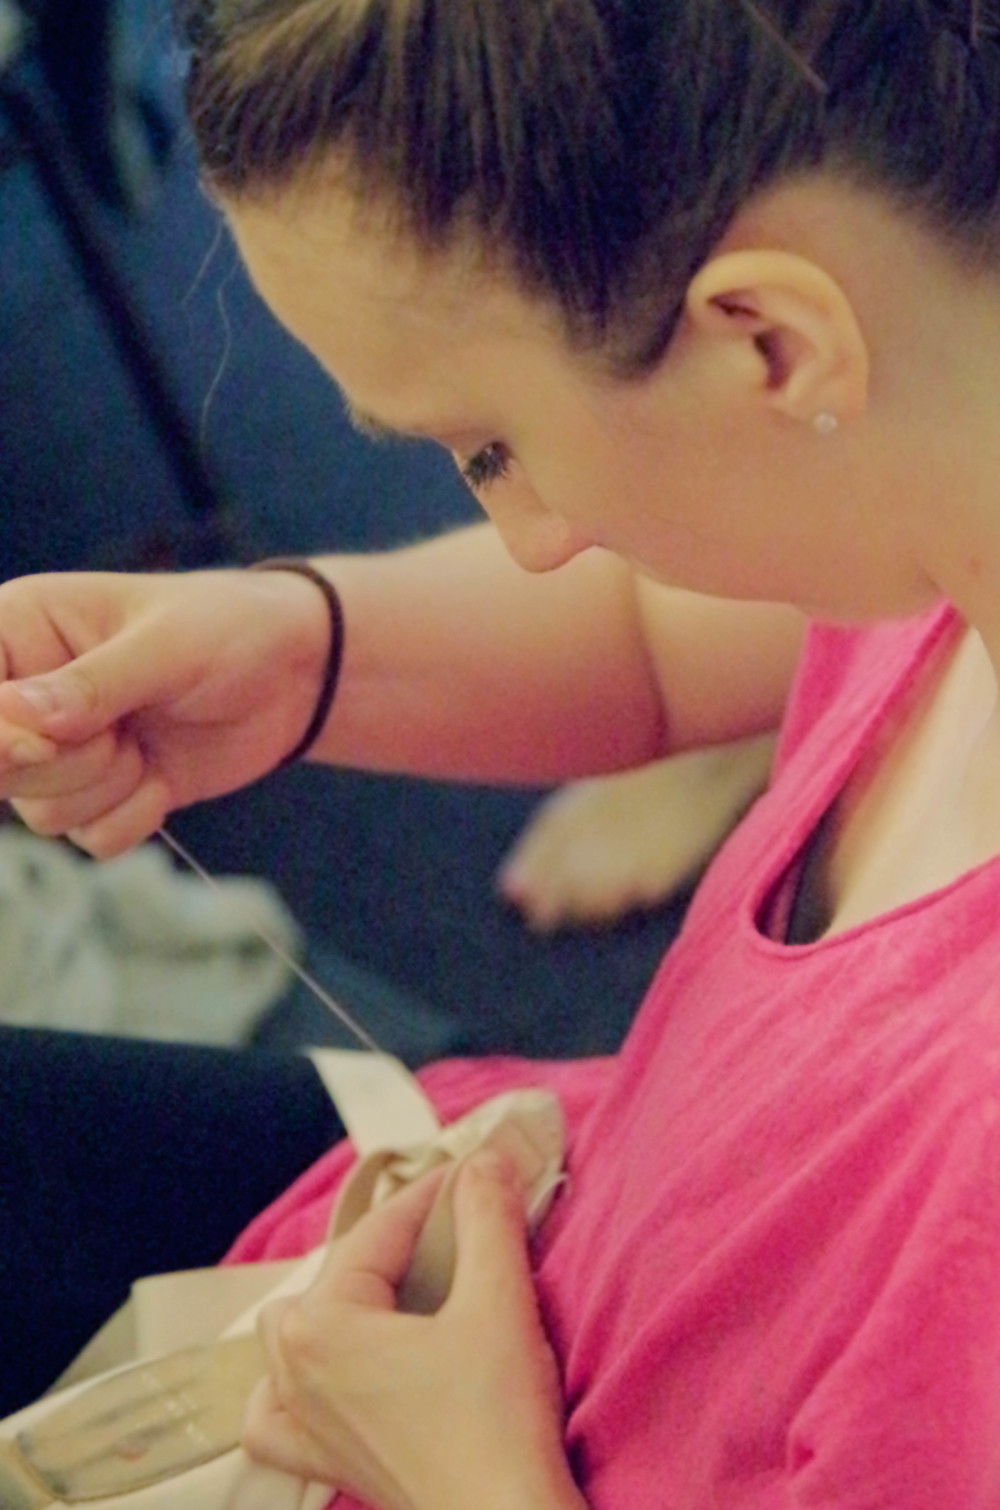 Pointe shoe preparation